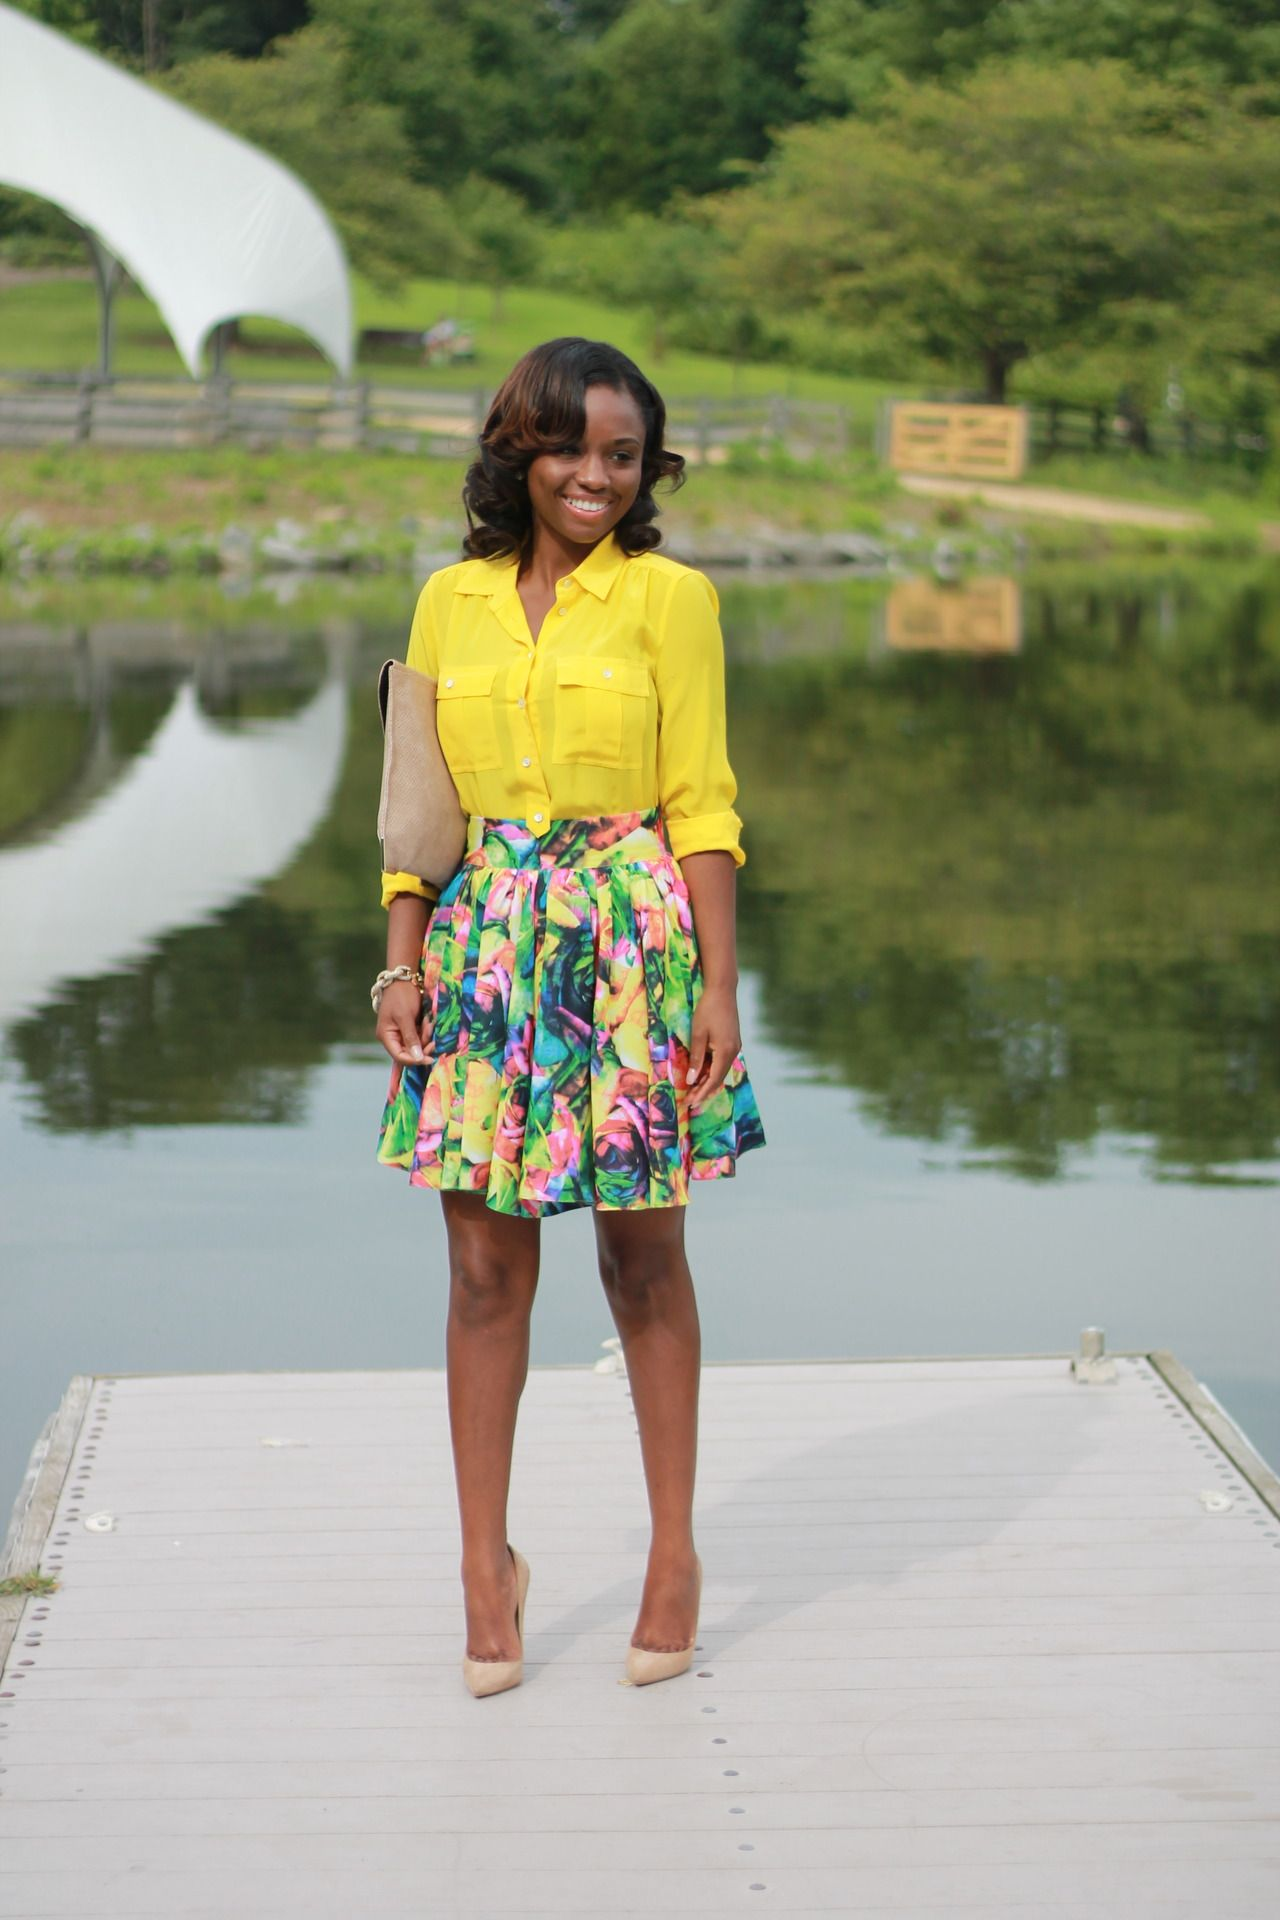 Black Girls Killing It Photo Casual Day Out Pinterest Black Girls Girls And Black